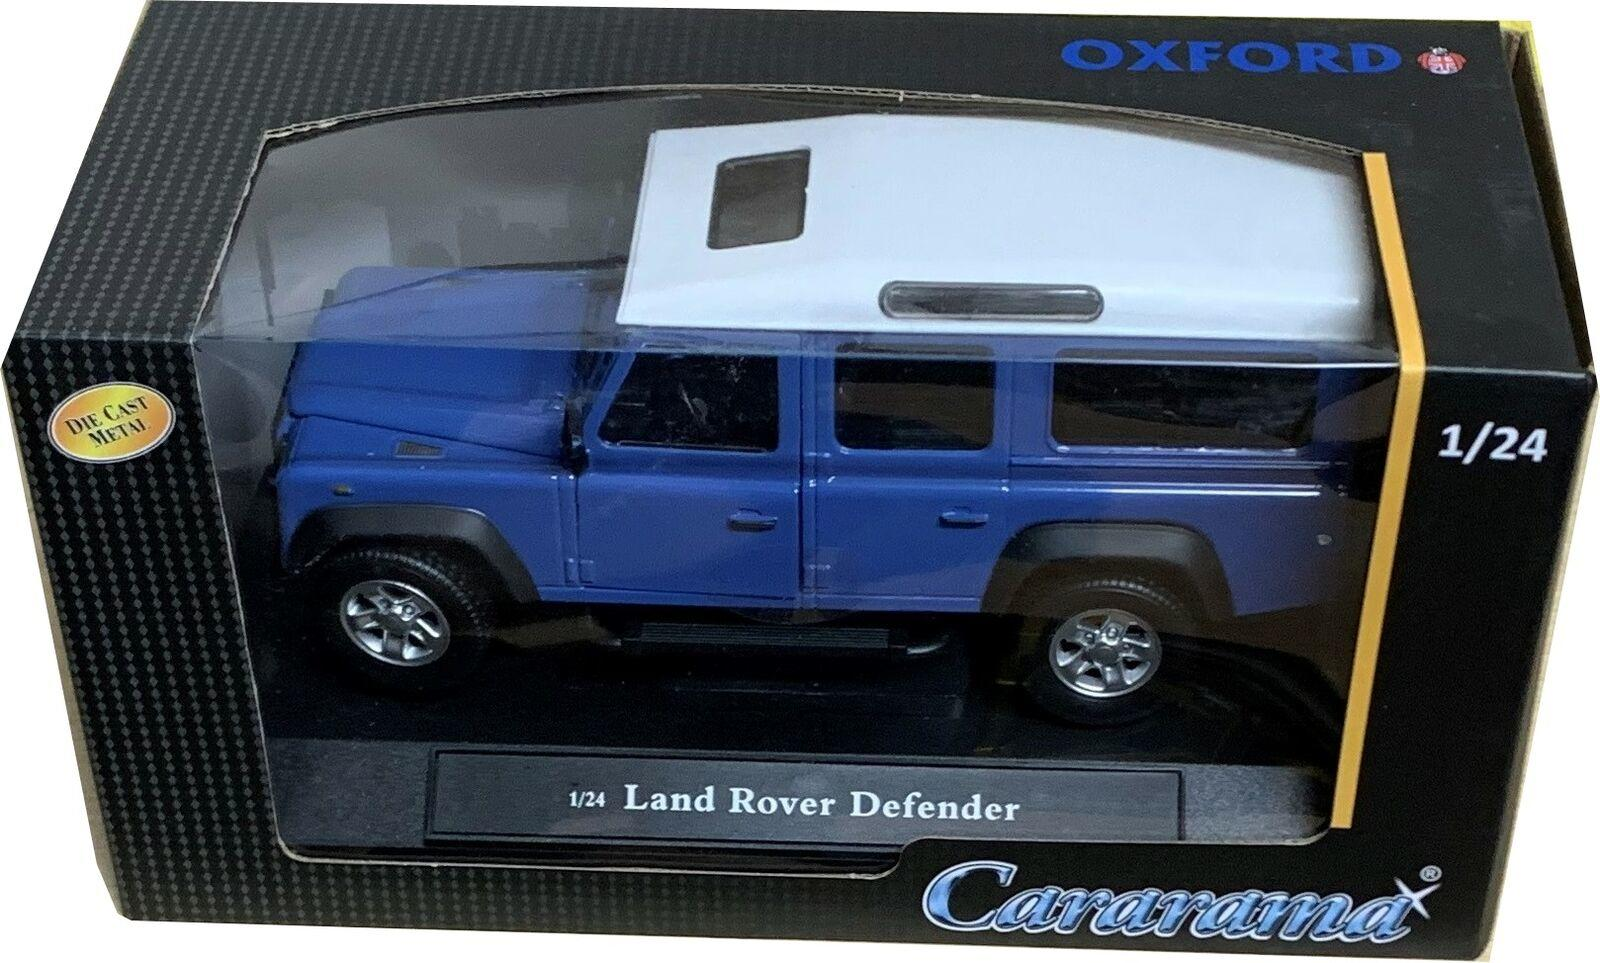 Land Rover Defender 110 in grey blue / white 1:24 scale model from Cararama